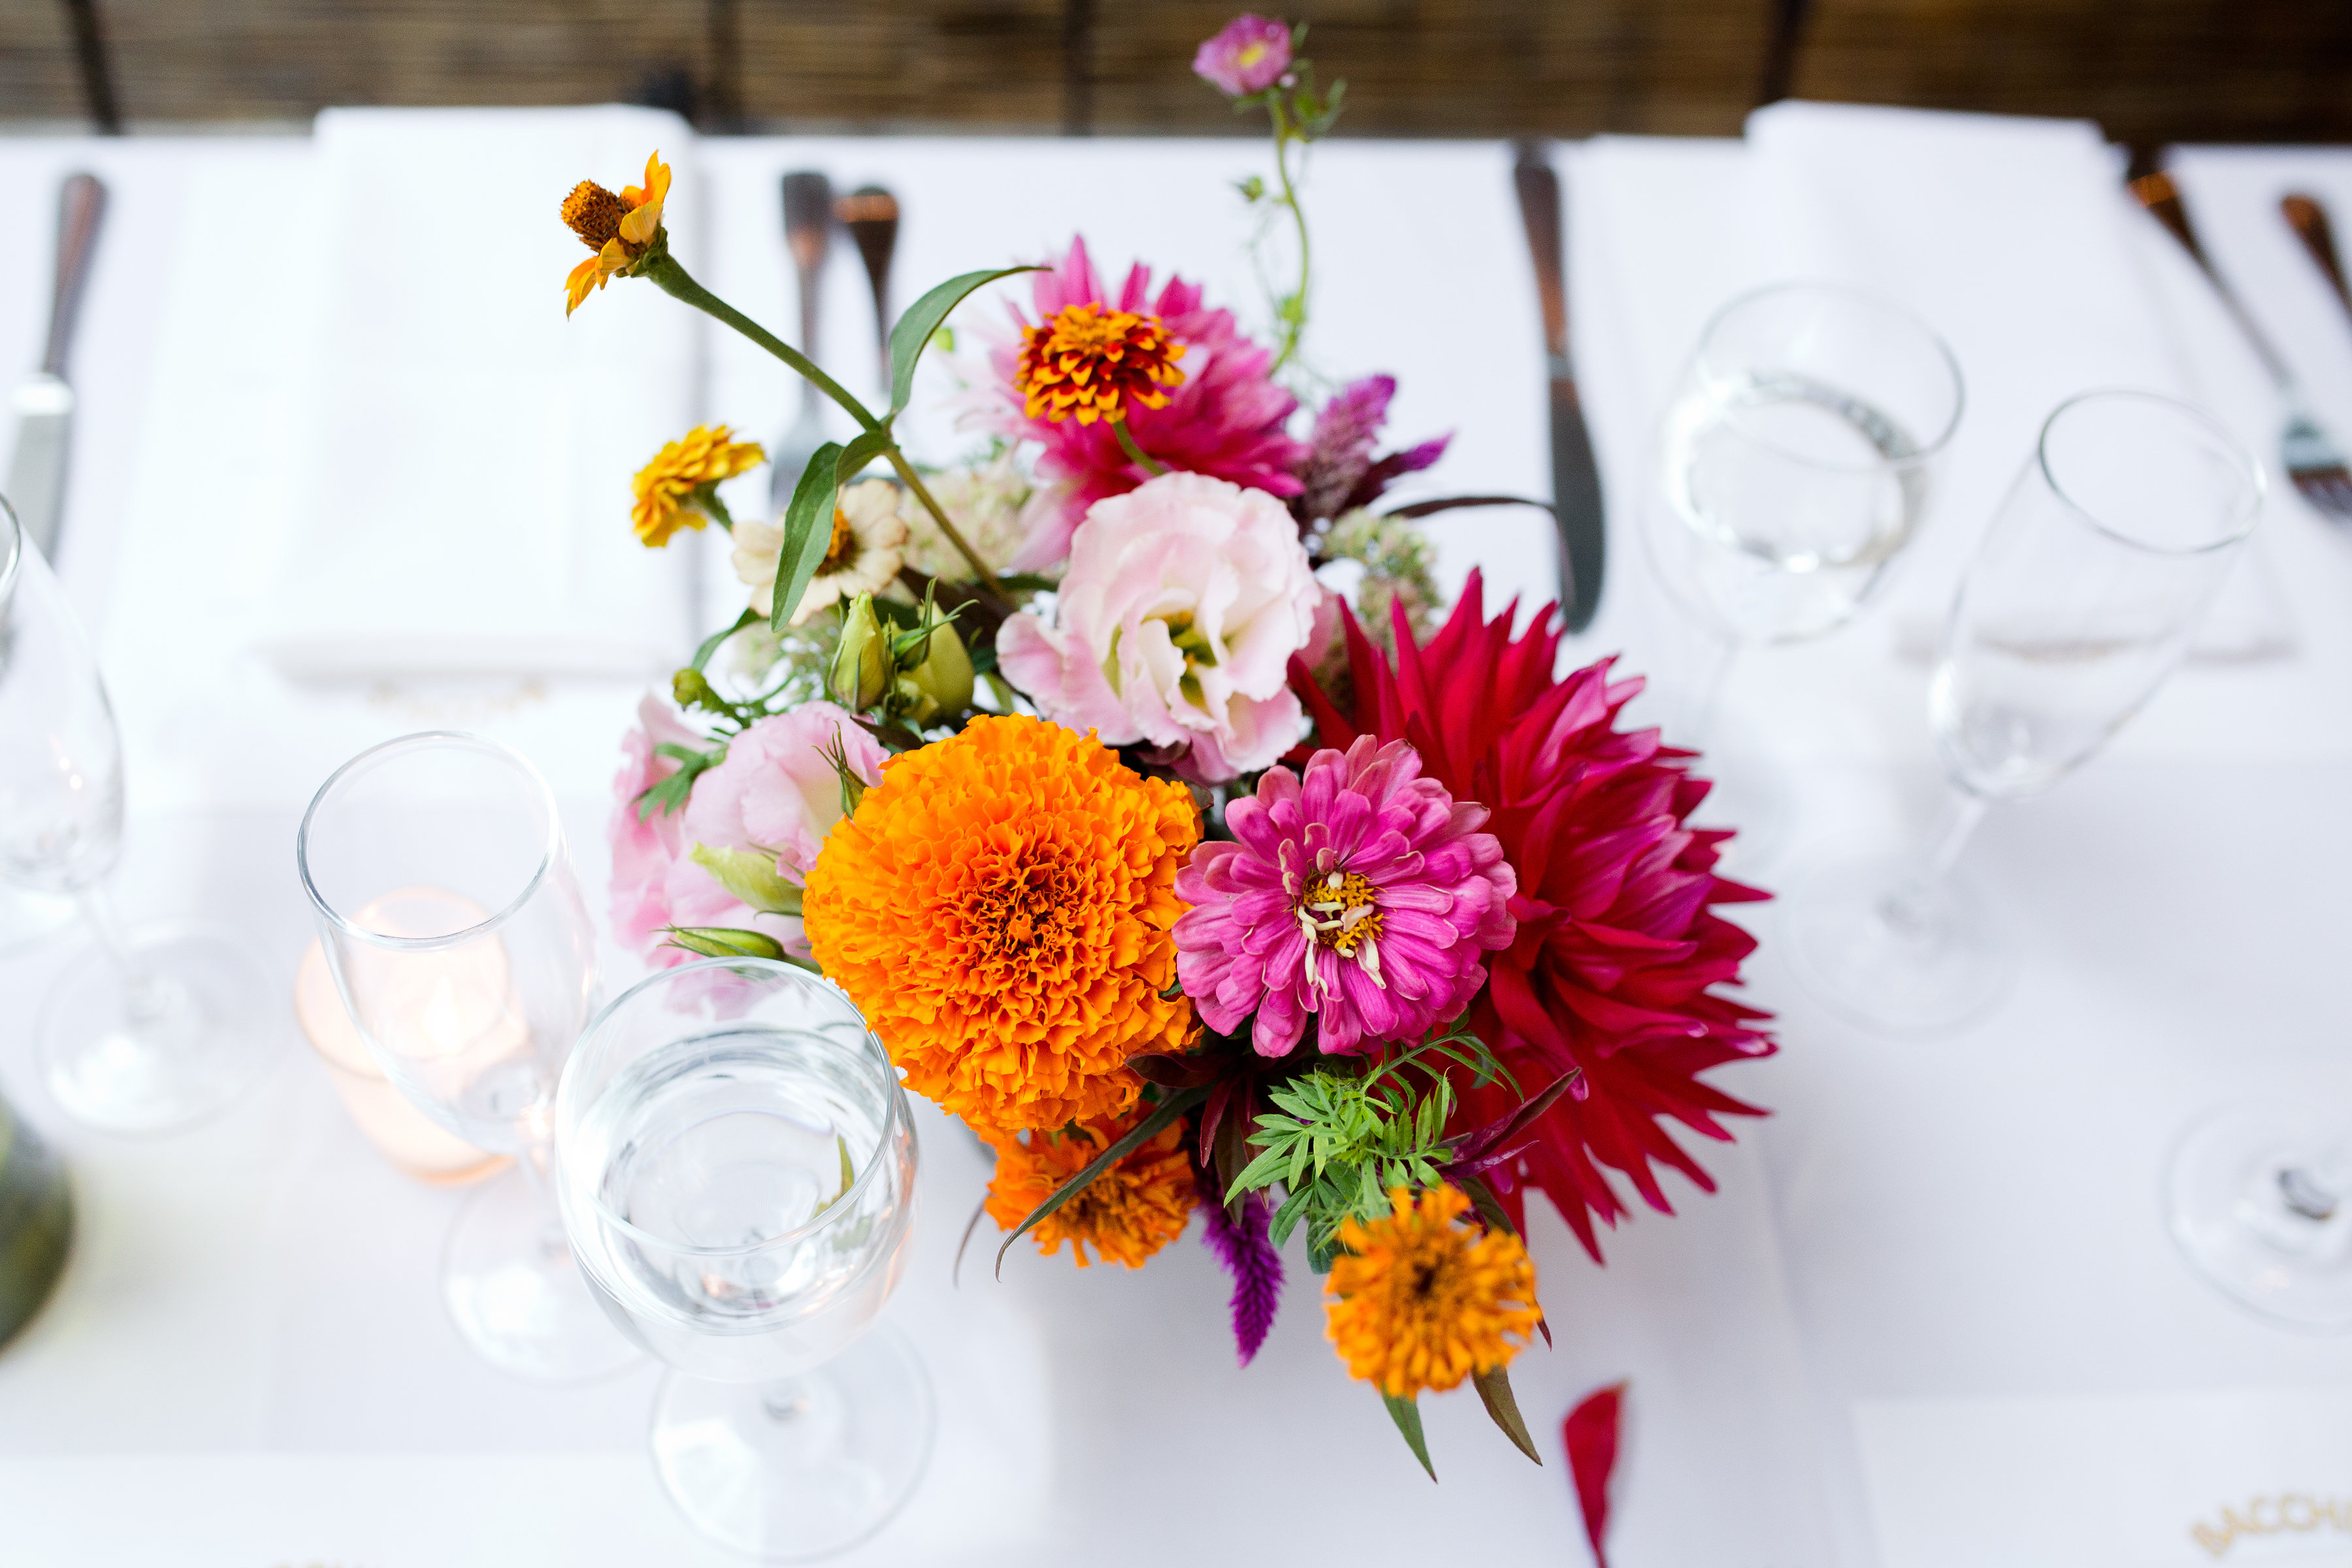 Mother's Day on the Brain? How about a Gifting a Floral Arranging Class!?